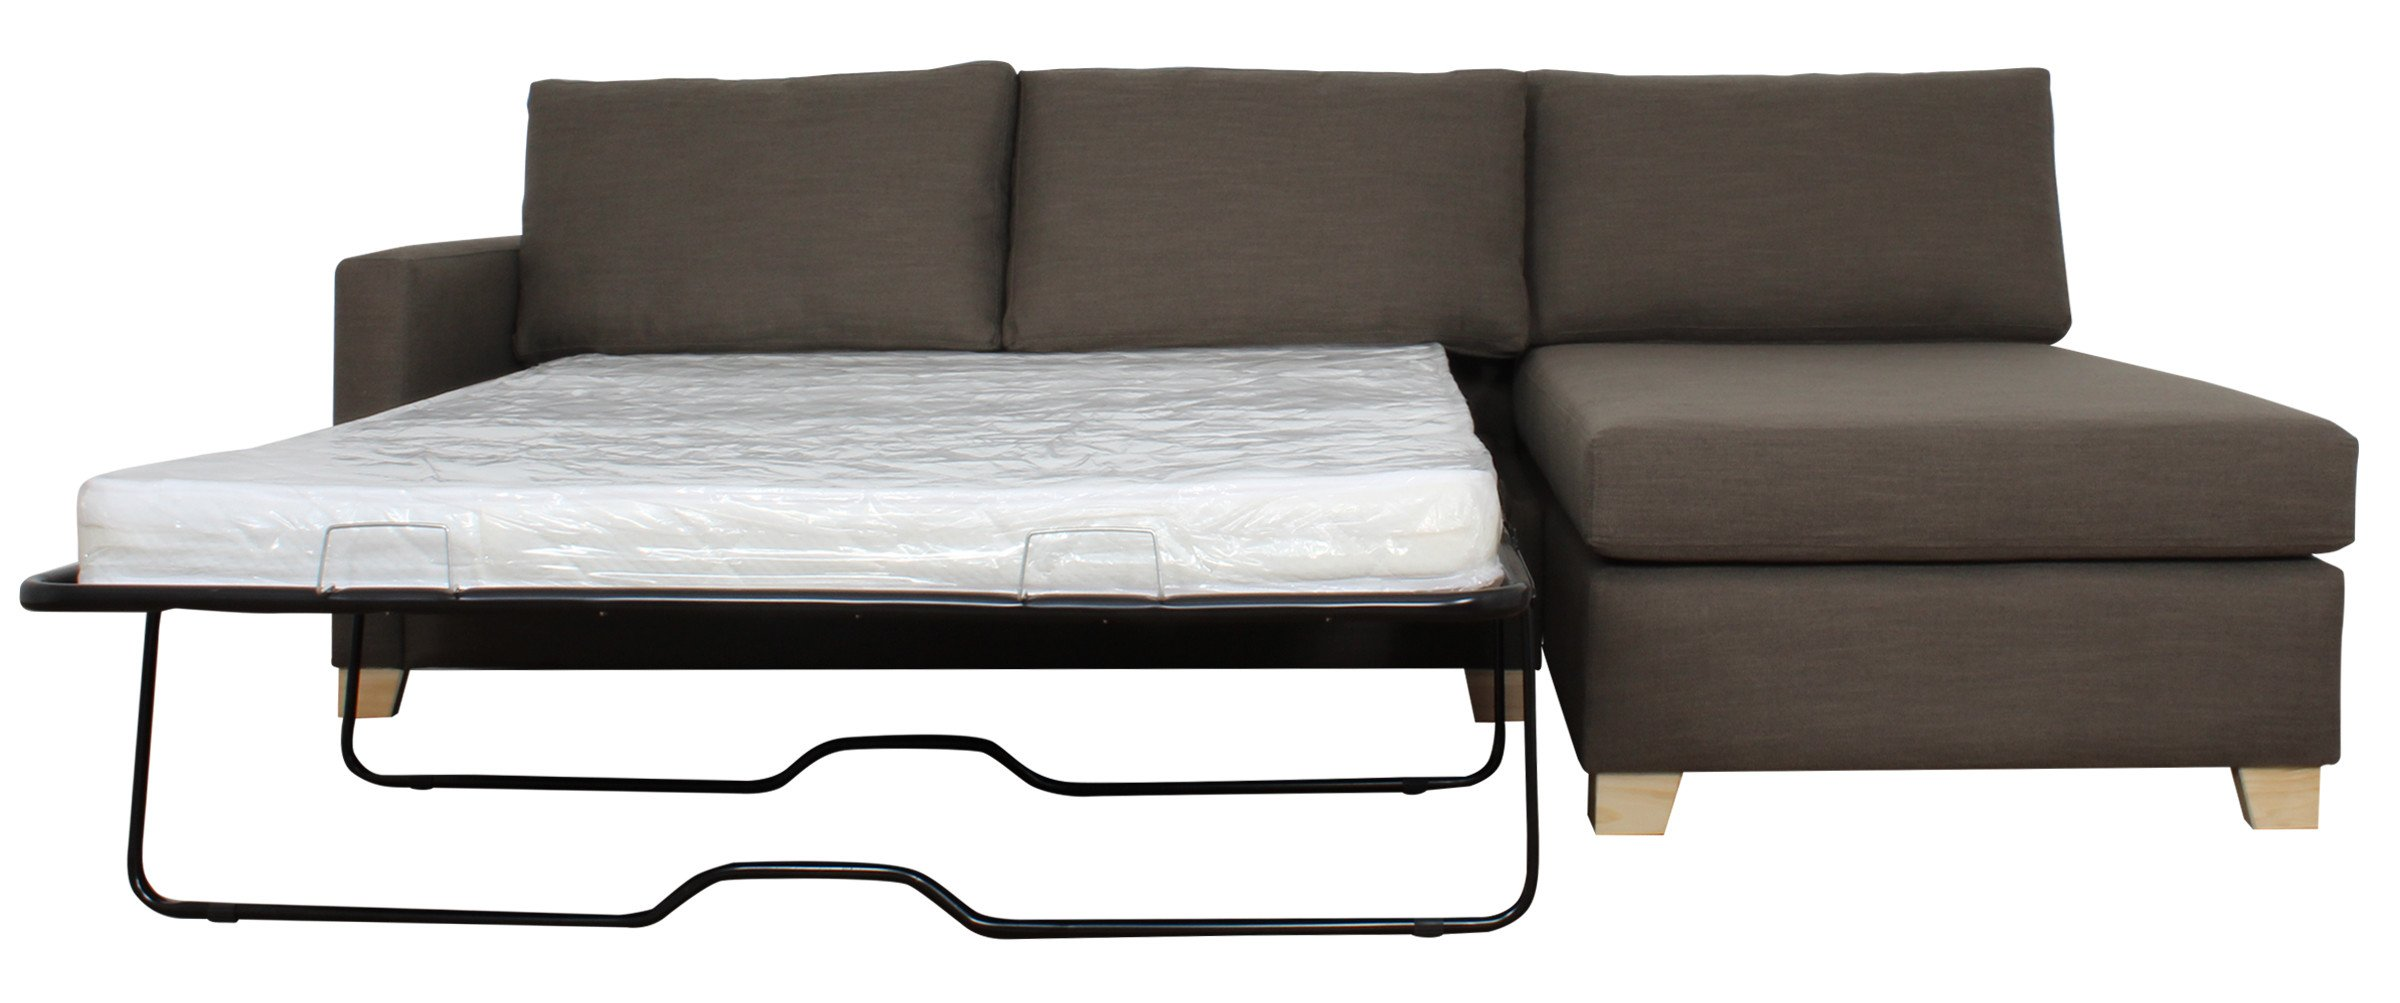 Sofa Cama New York Abierto